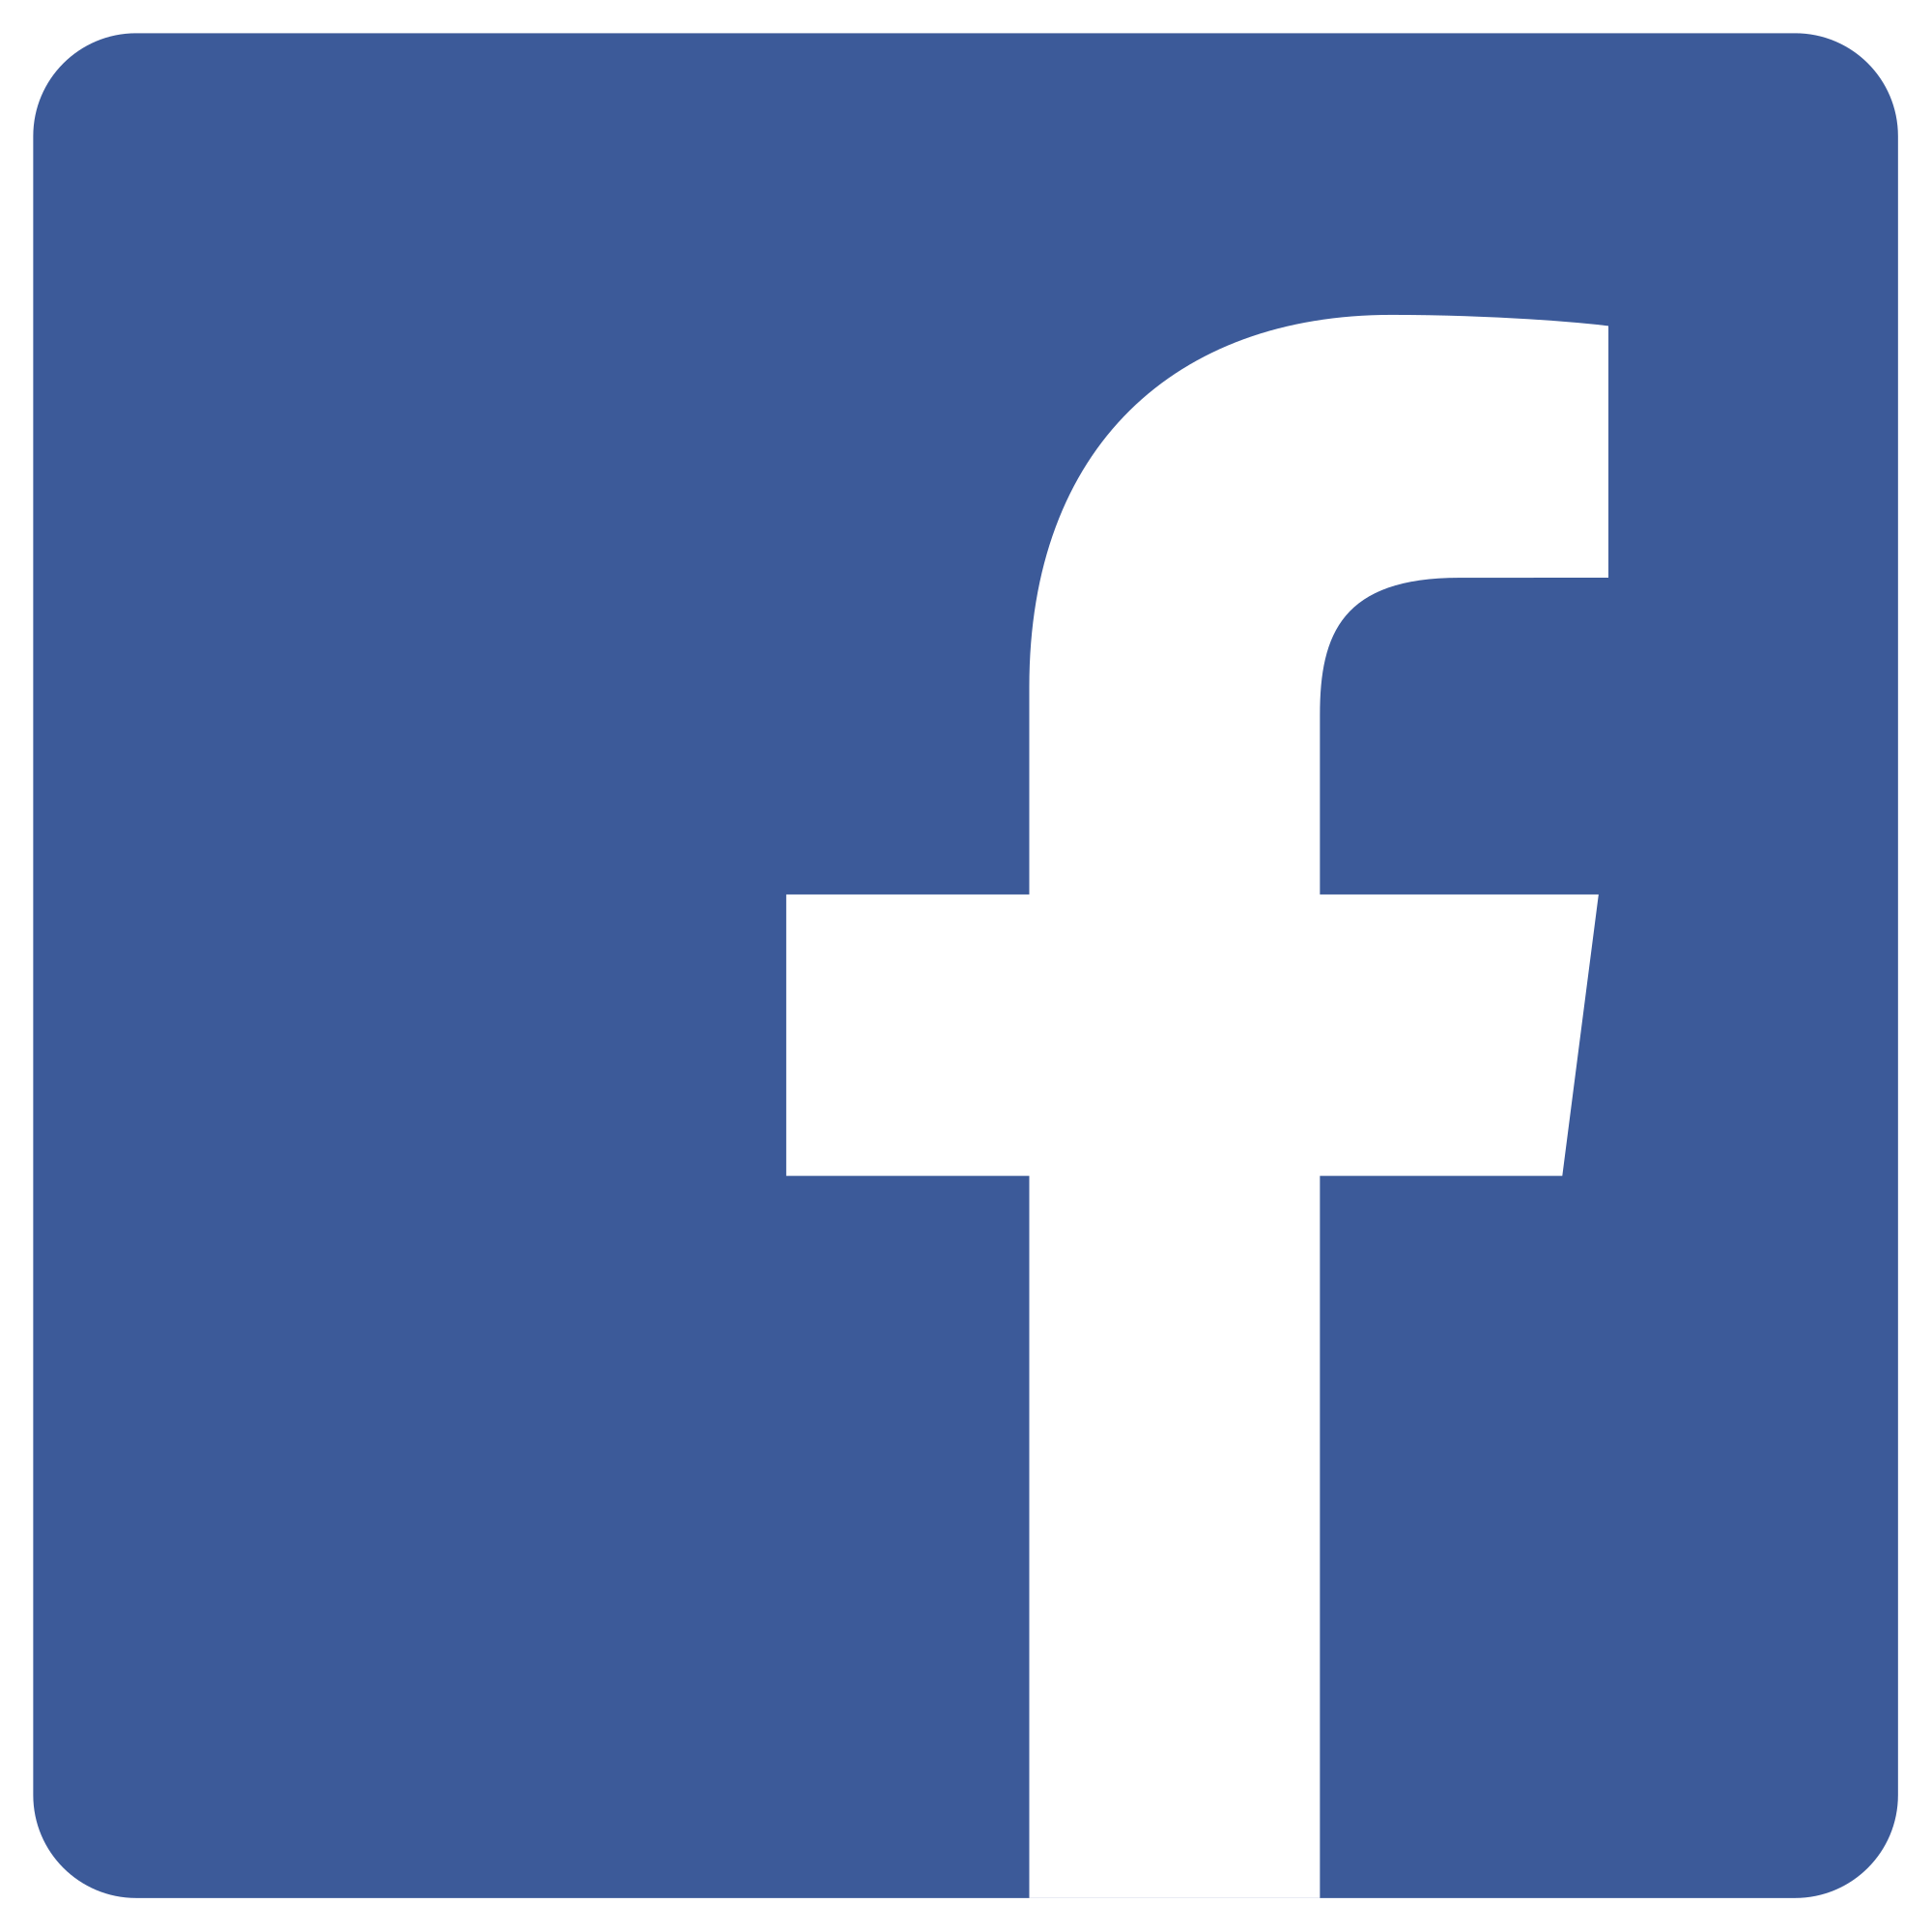 Facebook Icon Eps PNG - 104439